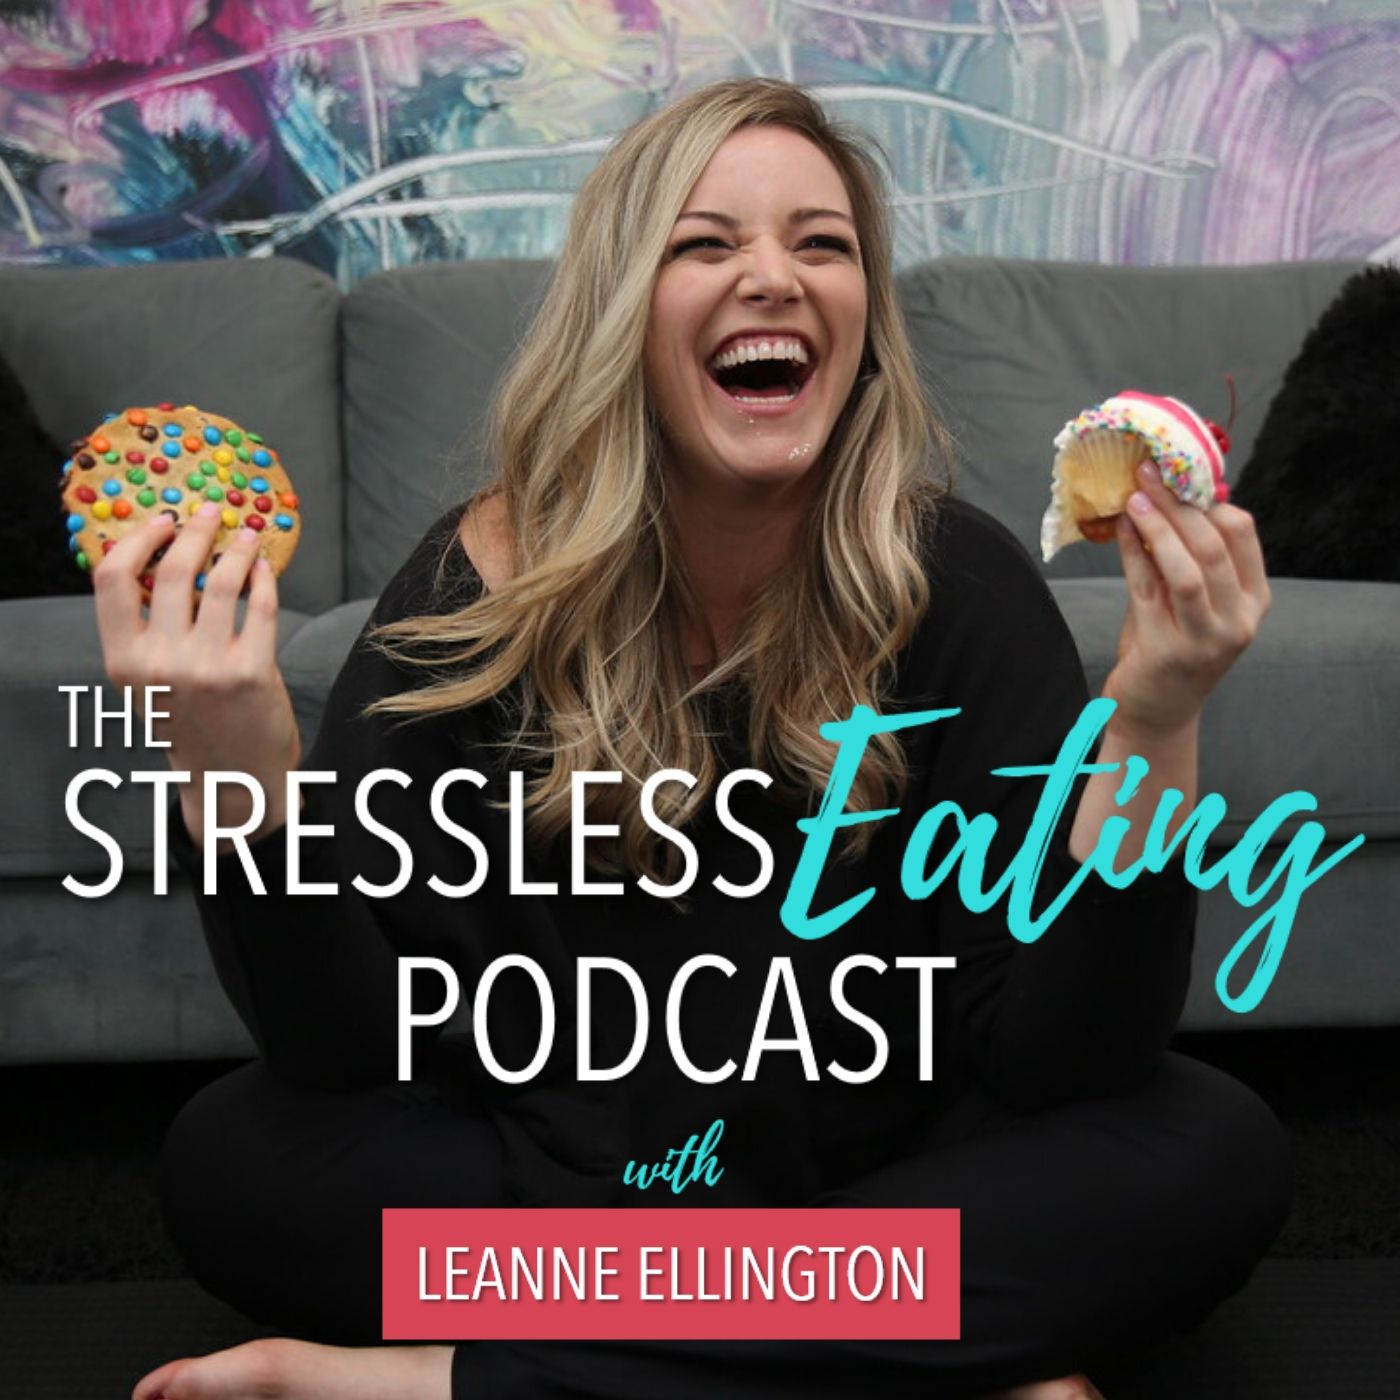 000: About The Stressless Eating Podcast show art